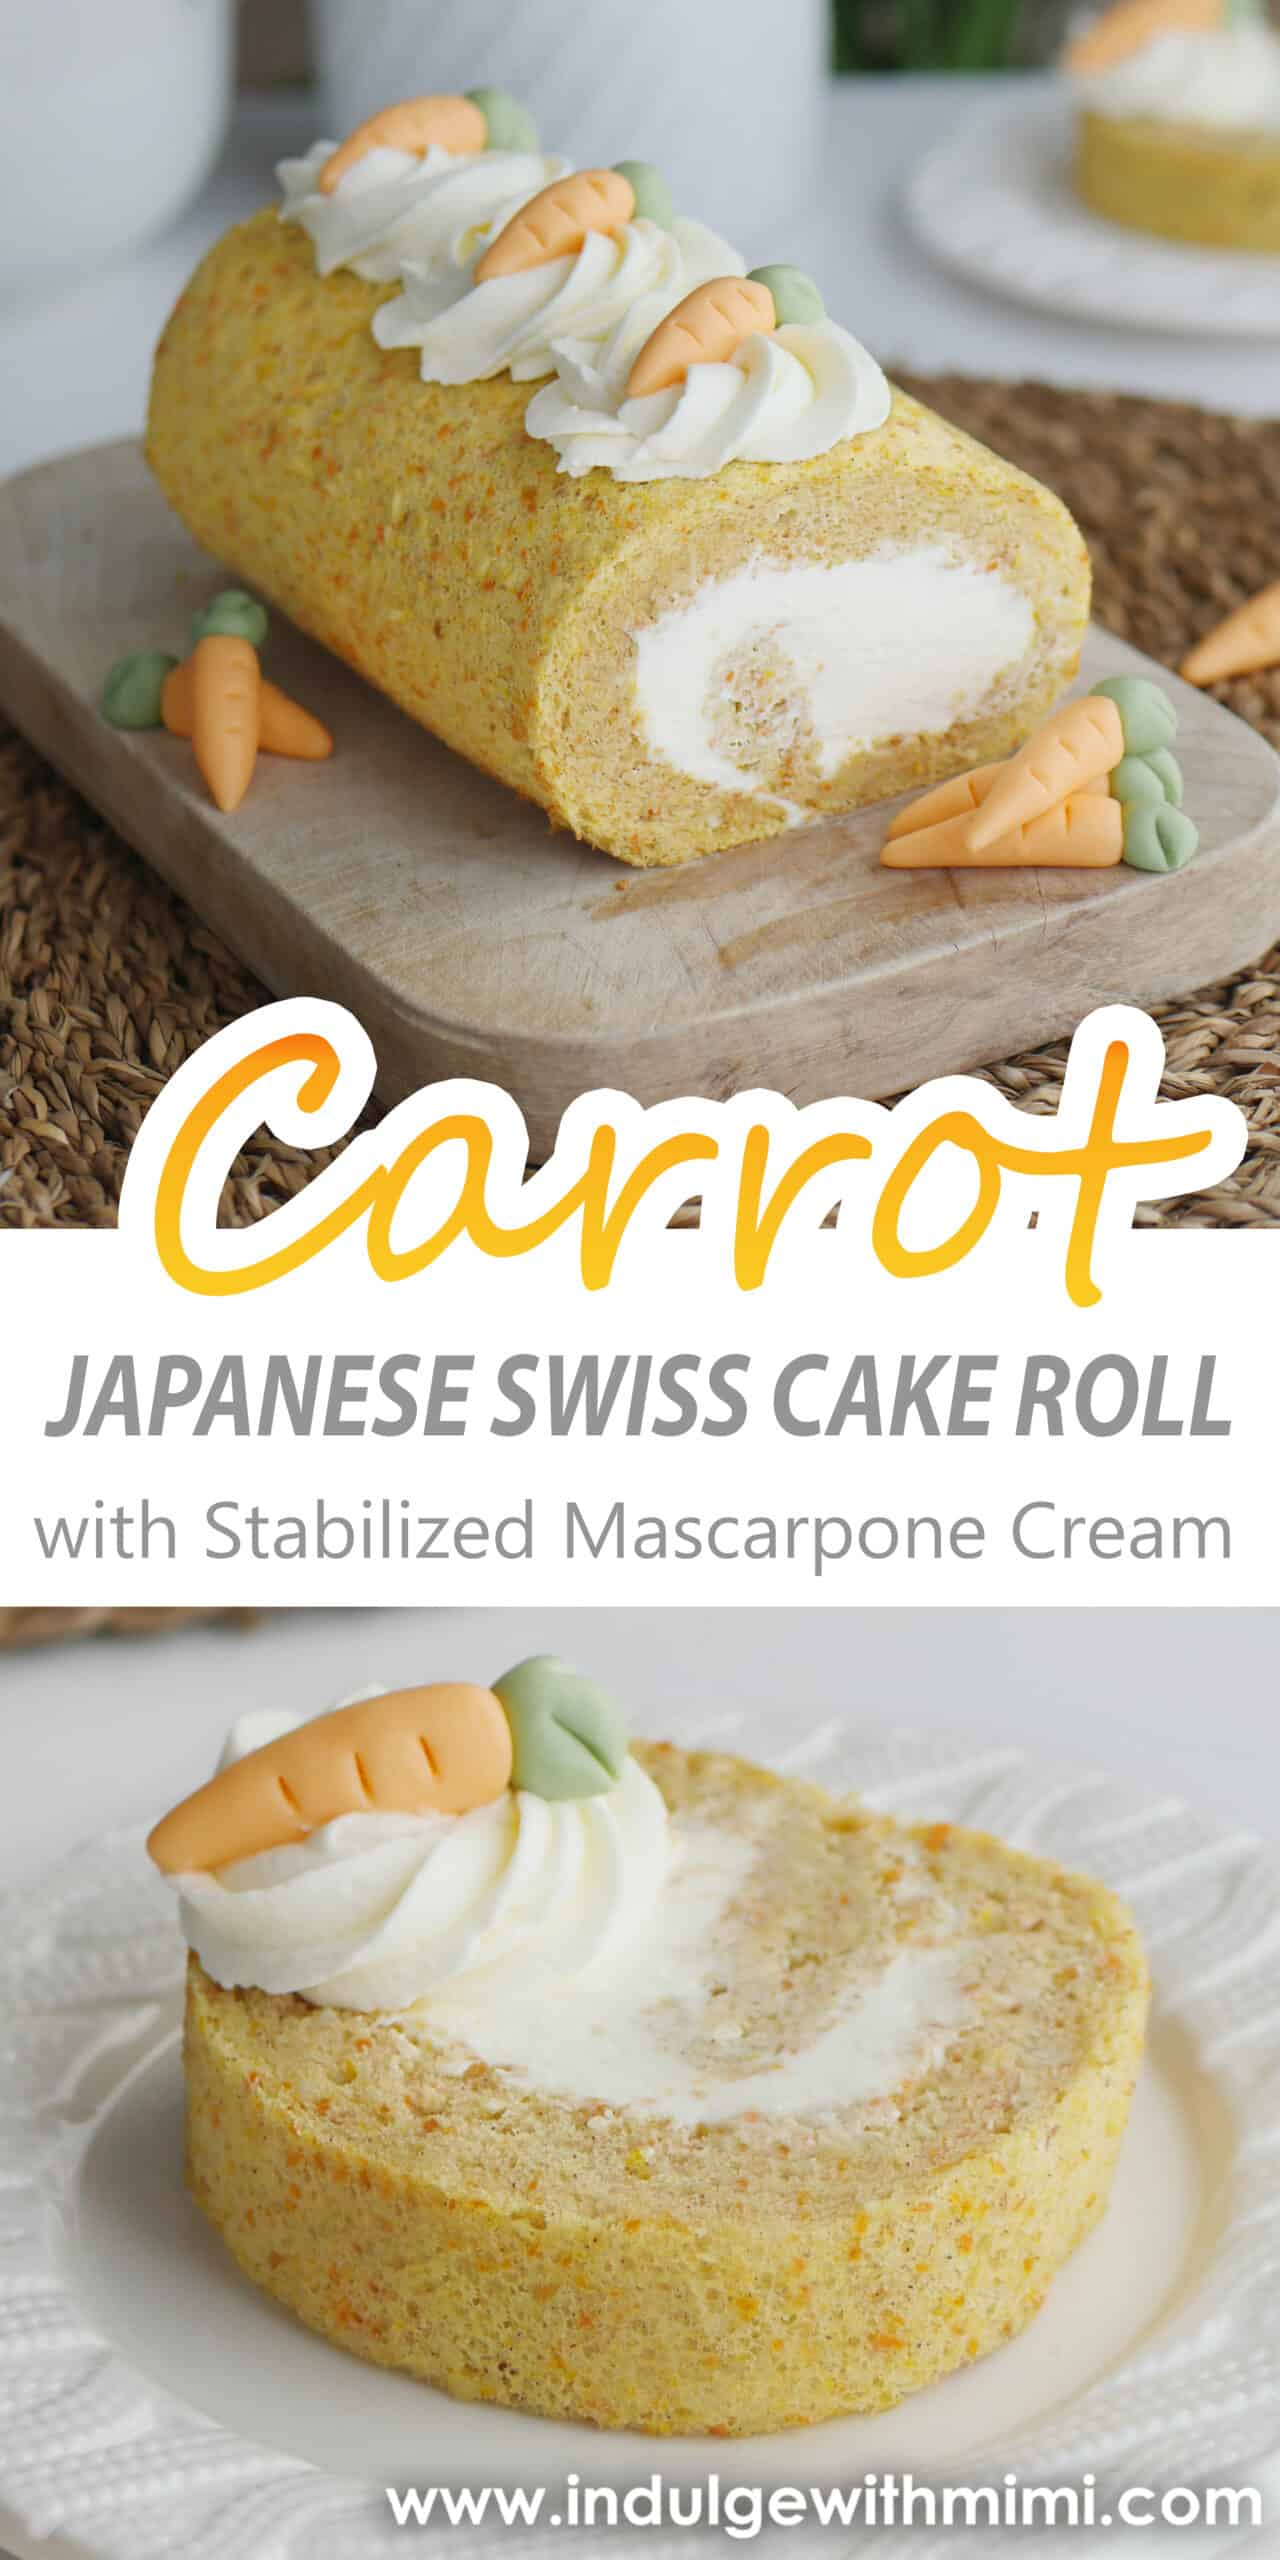 A carrot roll cake with cream and small fondant carrots sitting on a wooden cutting board.